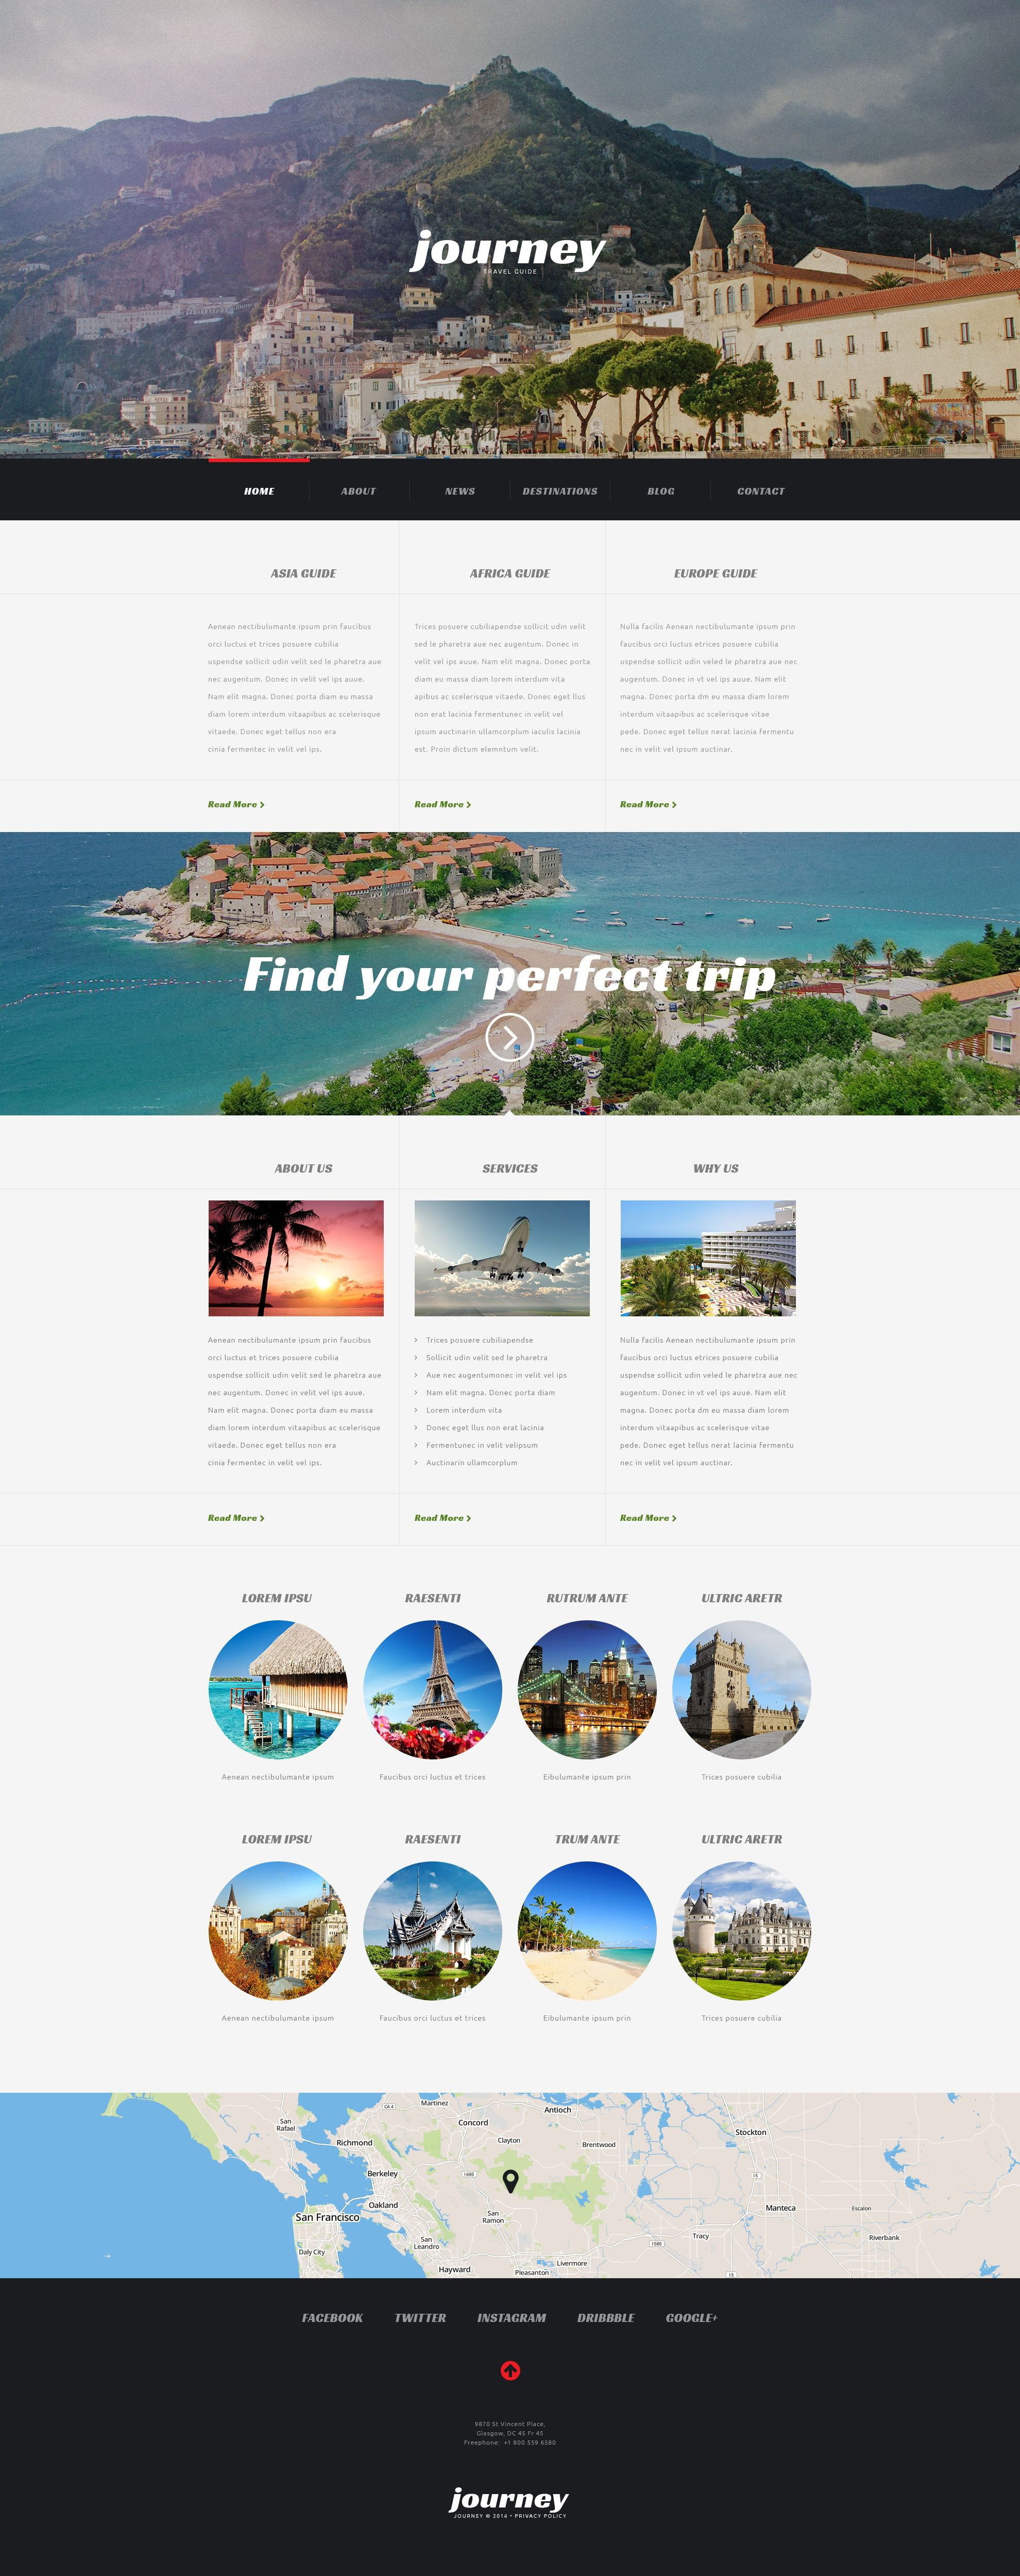 The Travel Agency WordPress Design 54044, one of the best WordPress themes of its kind (travel, most popular), also known as travel agency WordPress template, compass WordPress template, tour country WordPress template, resort WordPress template, spa WordPress template, flight hotel WordPress template, car WordPress template, rental WordPress template, cruise WordPress template, sights WordPress template, reservation WordPress template, location WordPress template, authorization WordPress template, ticket WordPress template, guide WordPress template, beach WordPress template, sea WordPress template, relaxation WordPress template, recreation WordPress template, impression WordPress template, air WordPress template, liner WordPress template, traveling WordPress template, apartment WordPress template, vacation WordPress template, rest WordPress template, comfort WordPress template, destination WordPress template, explorat and related with travel agency, compass, tour country, resort, spa, flight hotel, car, rental, cruise, sights, reservation, location, authorization, ticket, guide, beach, sea, relaxation, recreation, impression, air, liner, traveling, apartment, vacation, rest, comfort, destination, explorat, etc.